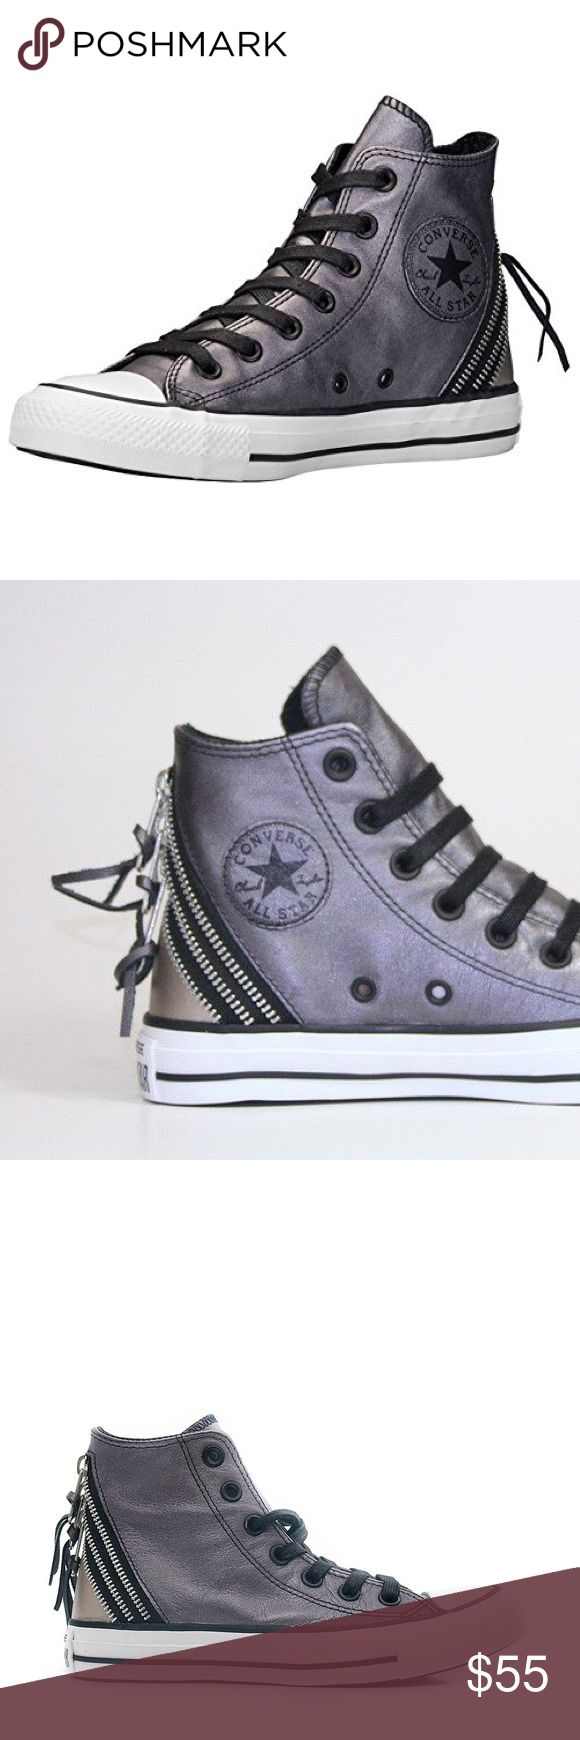 Converse women's shoes tie zip hi size 6 new Brand new Converse Shoes Sneakers